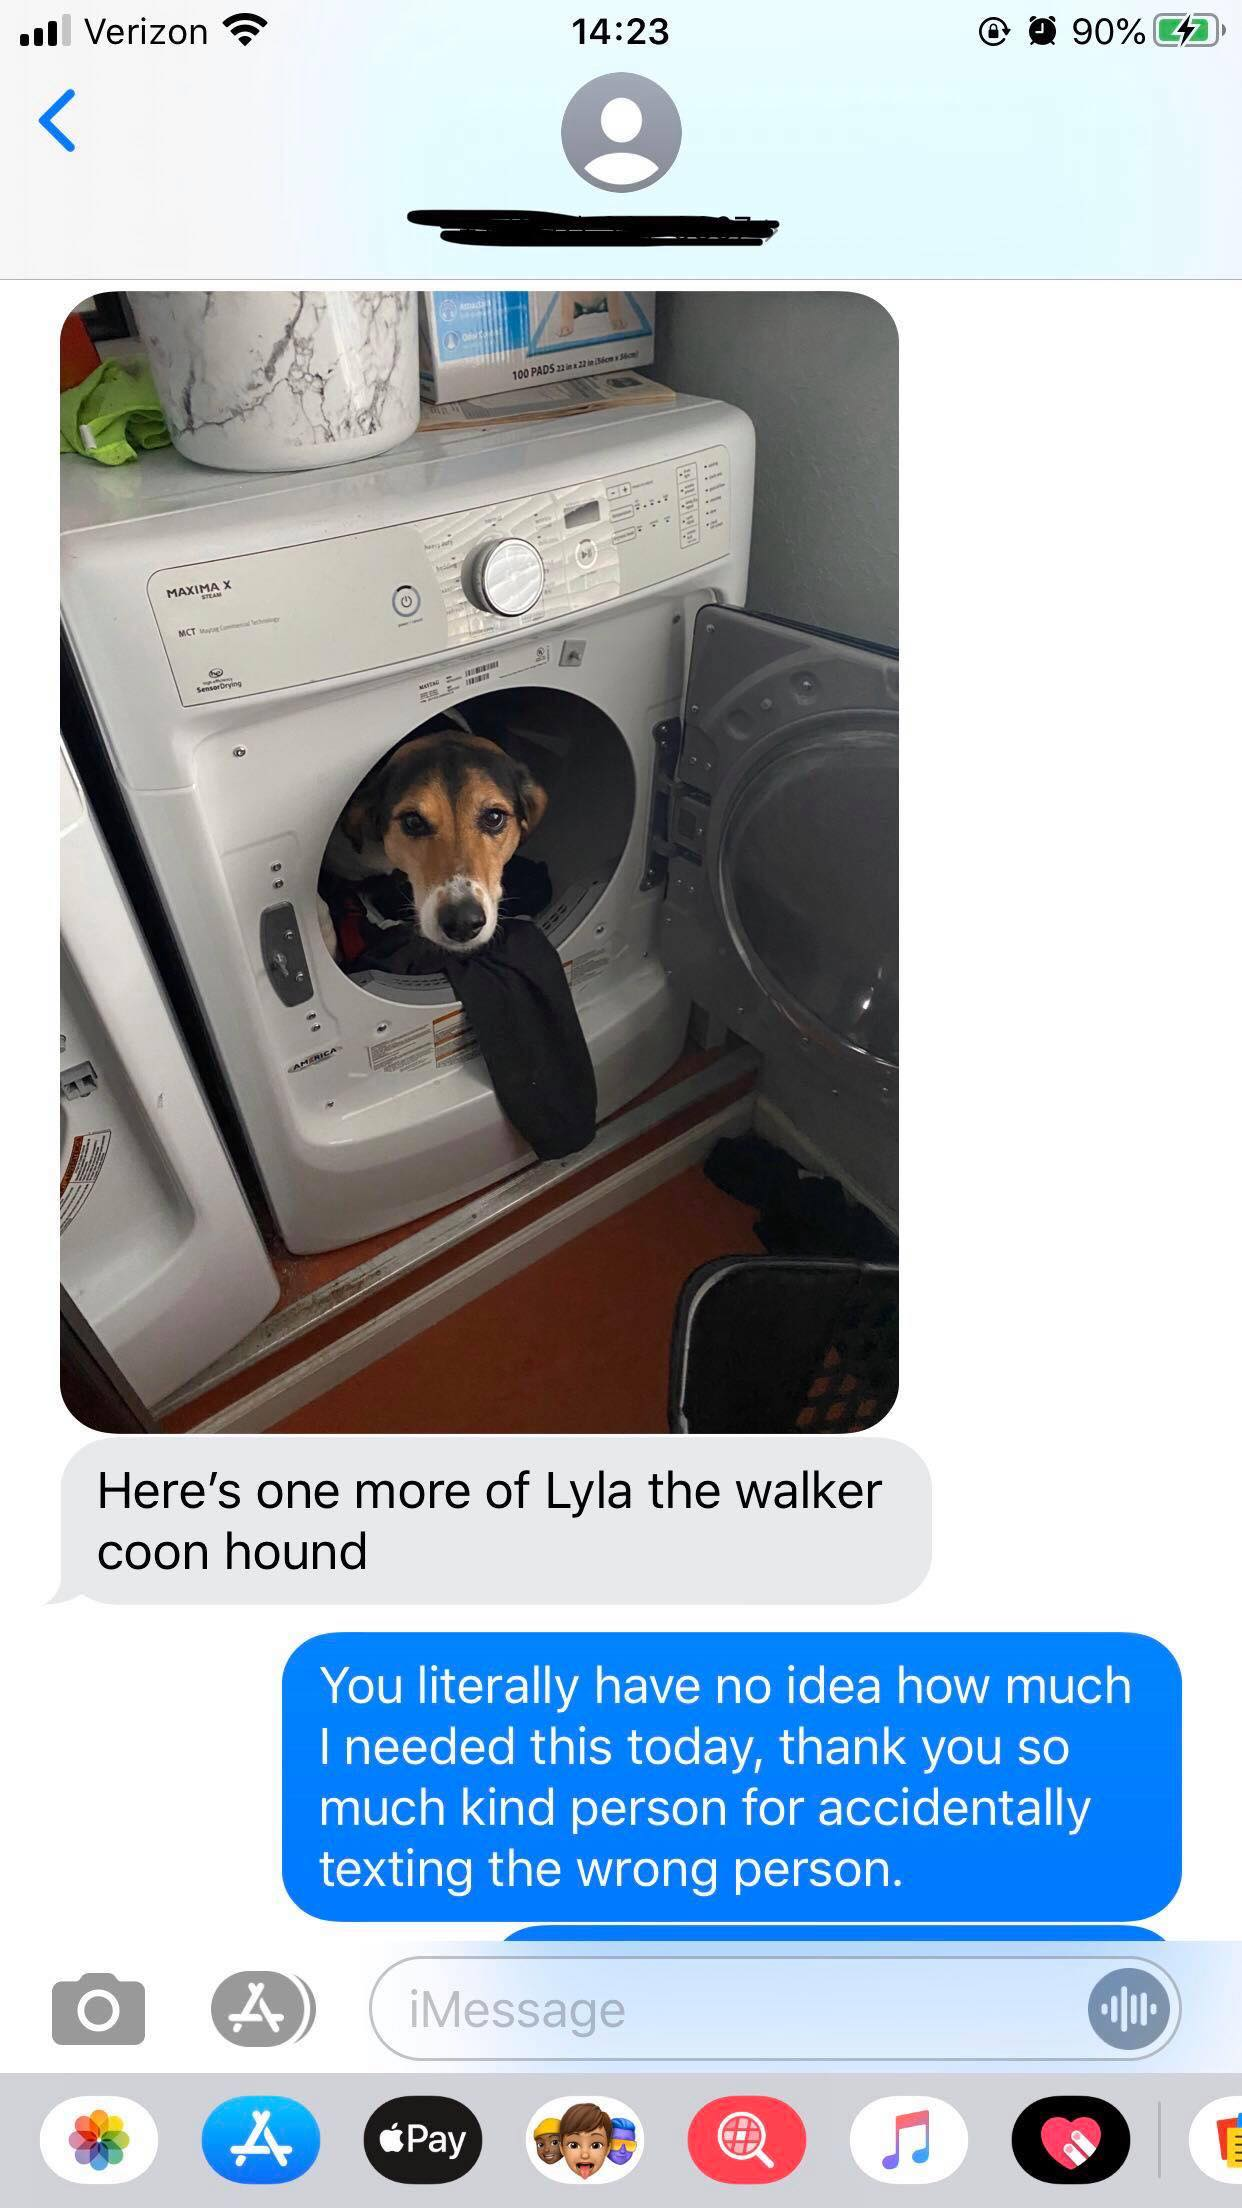 Woman sent another picture of dog in dryer to cheer her up